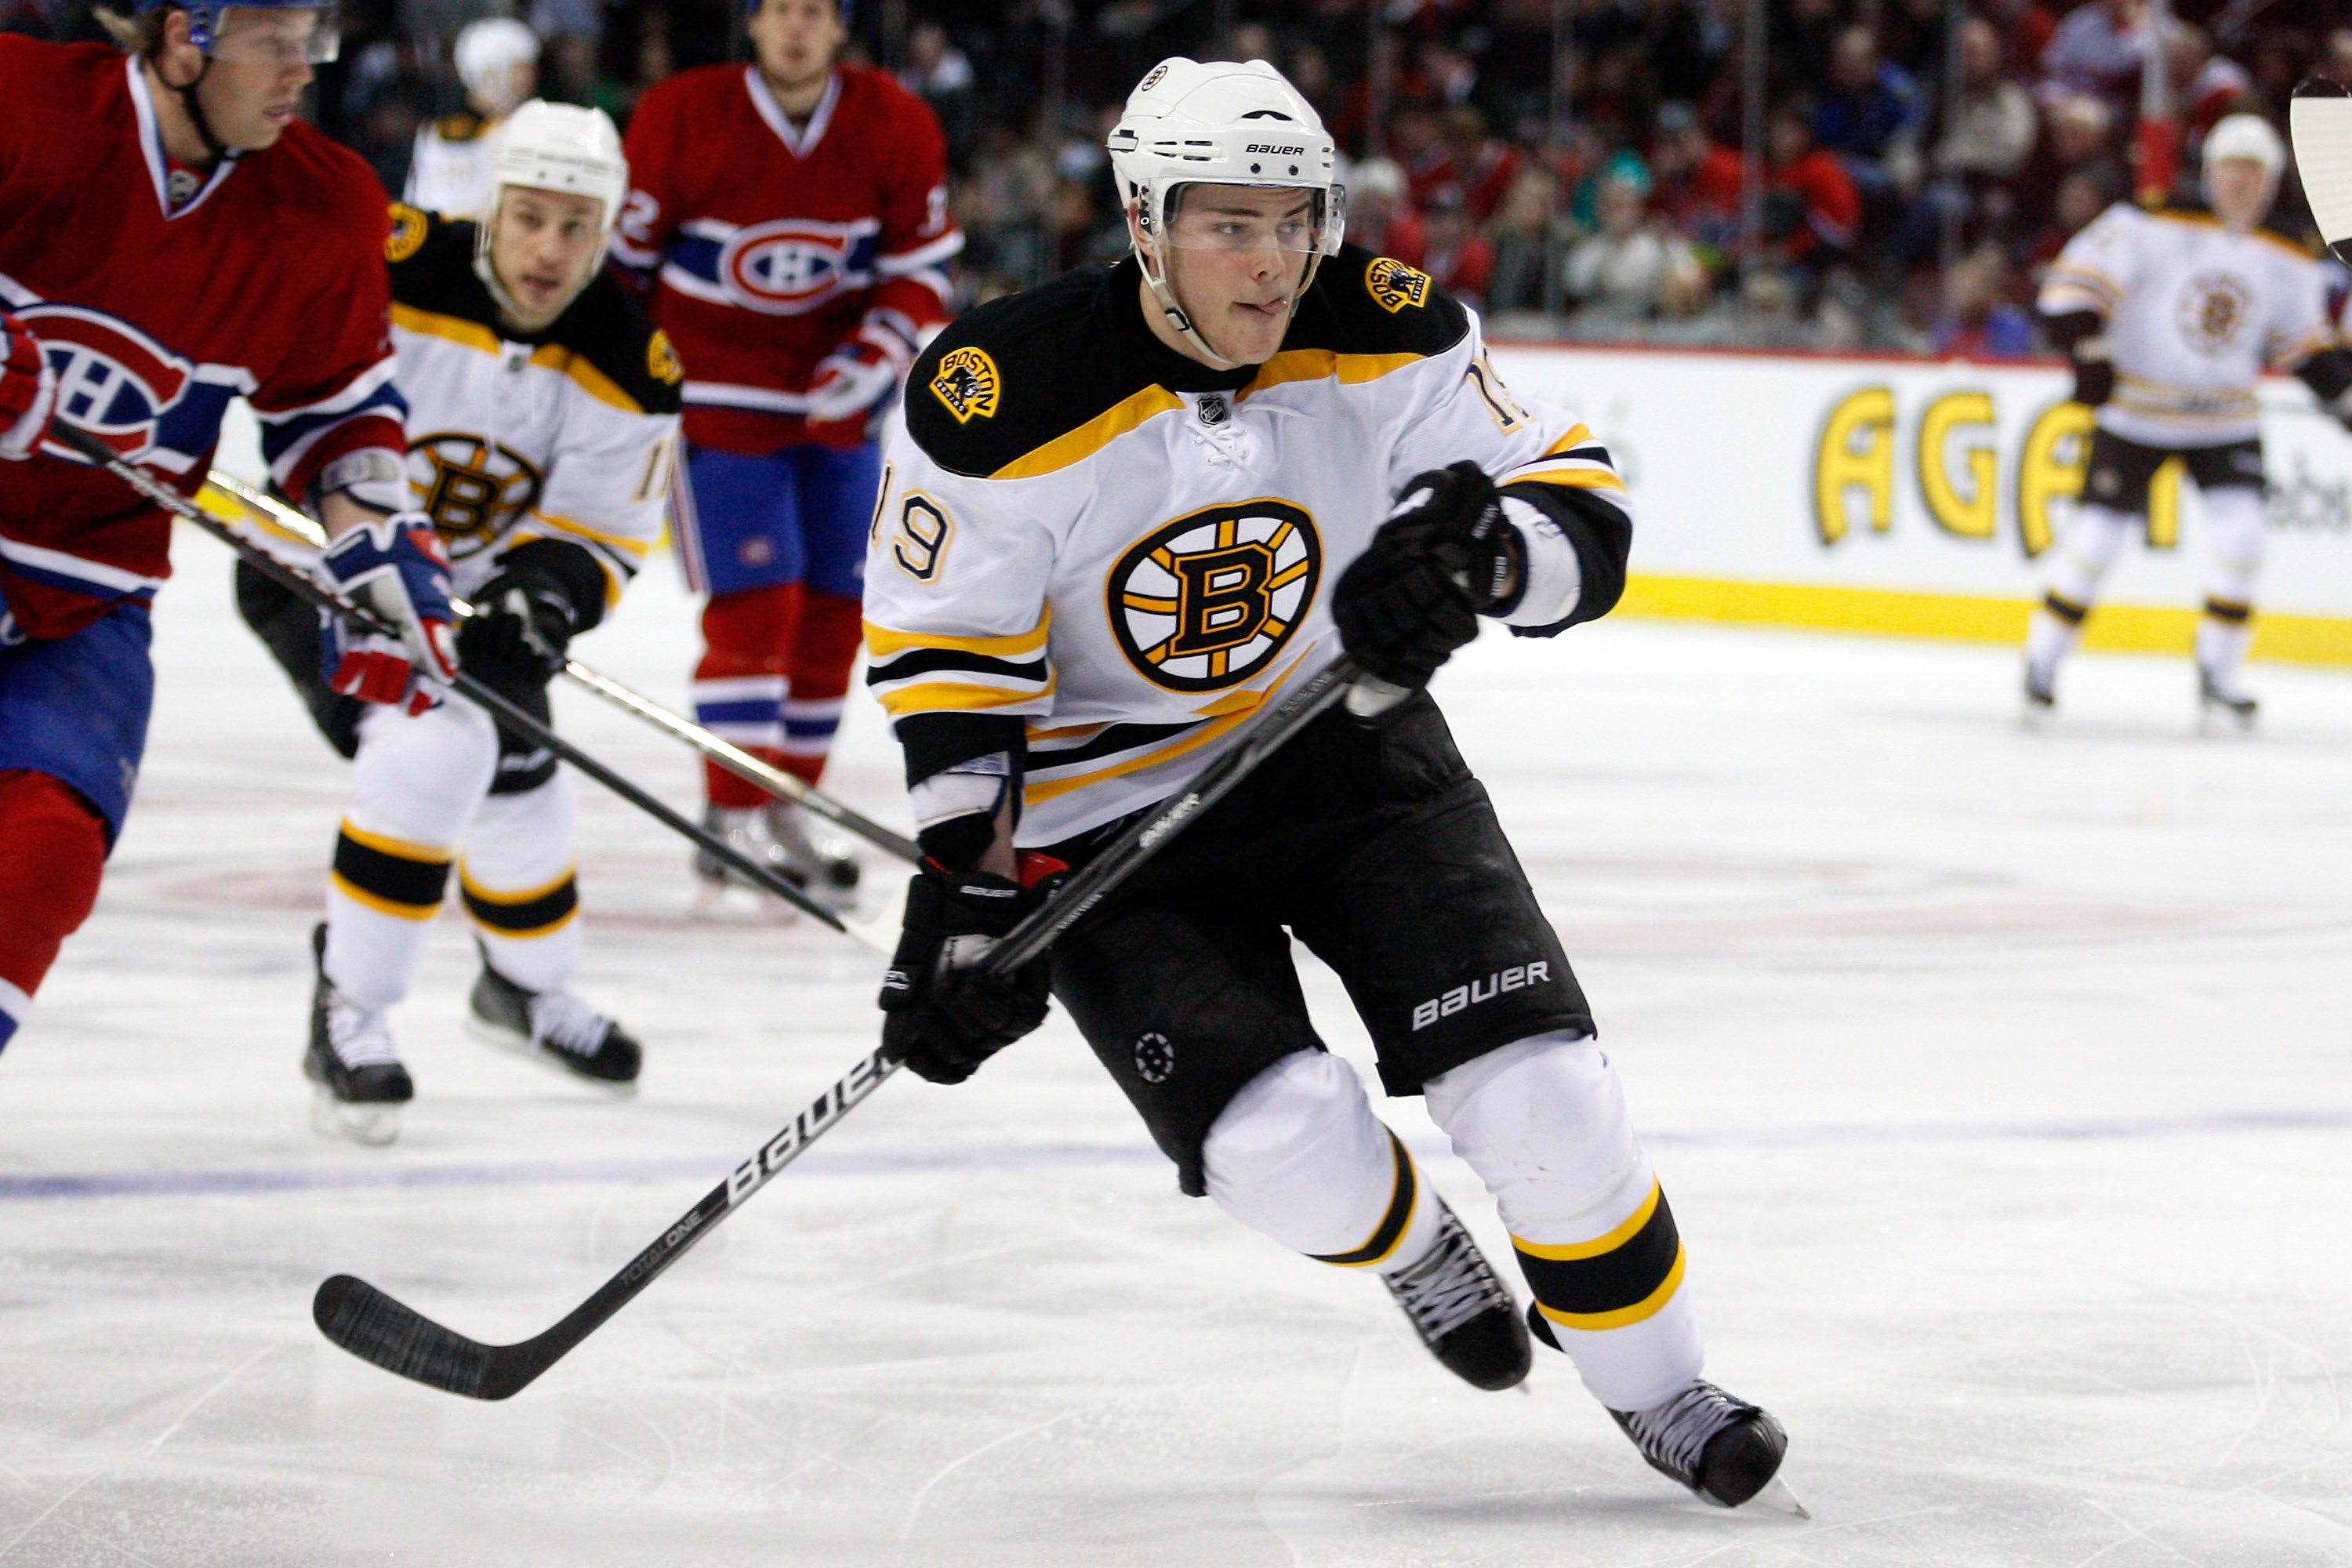 MONTREAL, CANADA - MARCH 8:  Tyler Seguin #19 of the Boston Bruins skates during the NHL game against the Montreal Canadiens at the Bell Centre on March 8, 2011 in Montreal, Quebec, Canada.  The Canadiens defeated the Bruins 4-1.  (Photo by Richard Wolowi